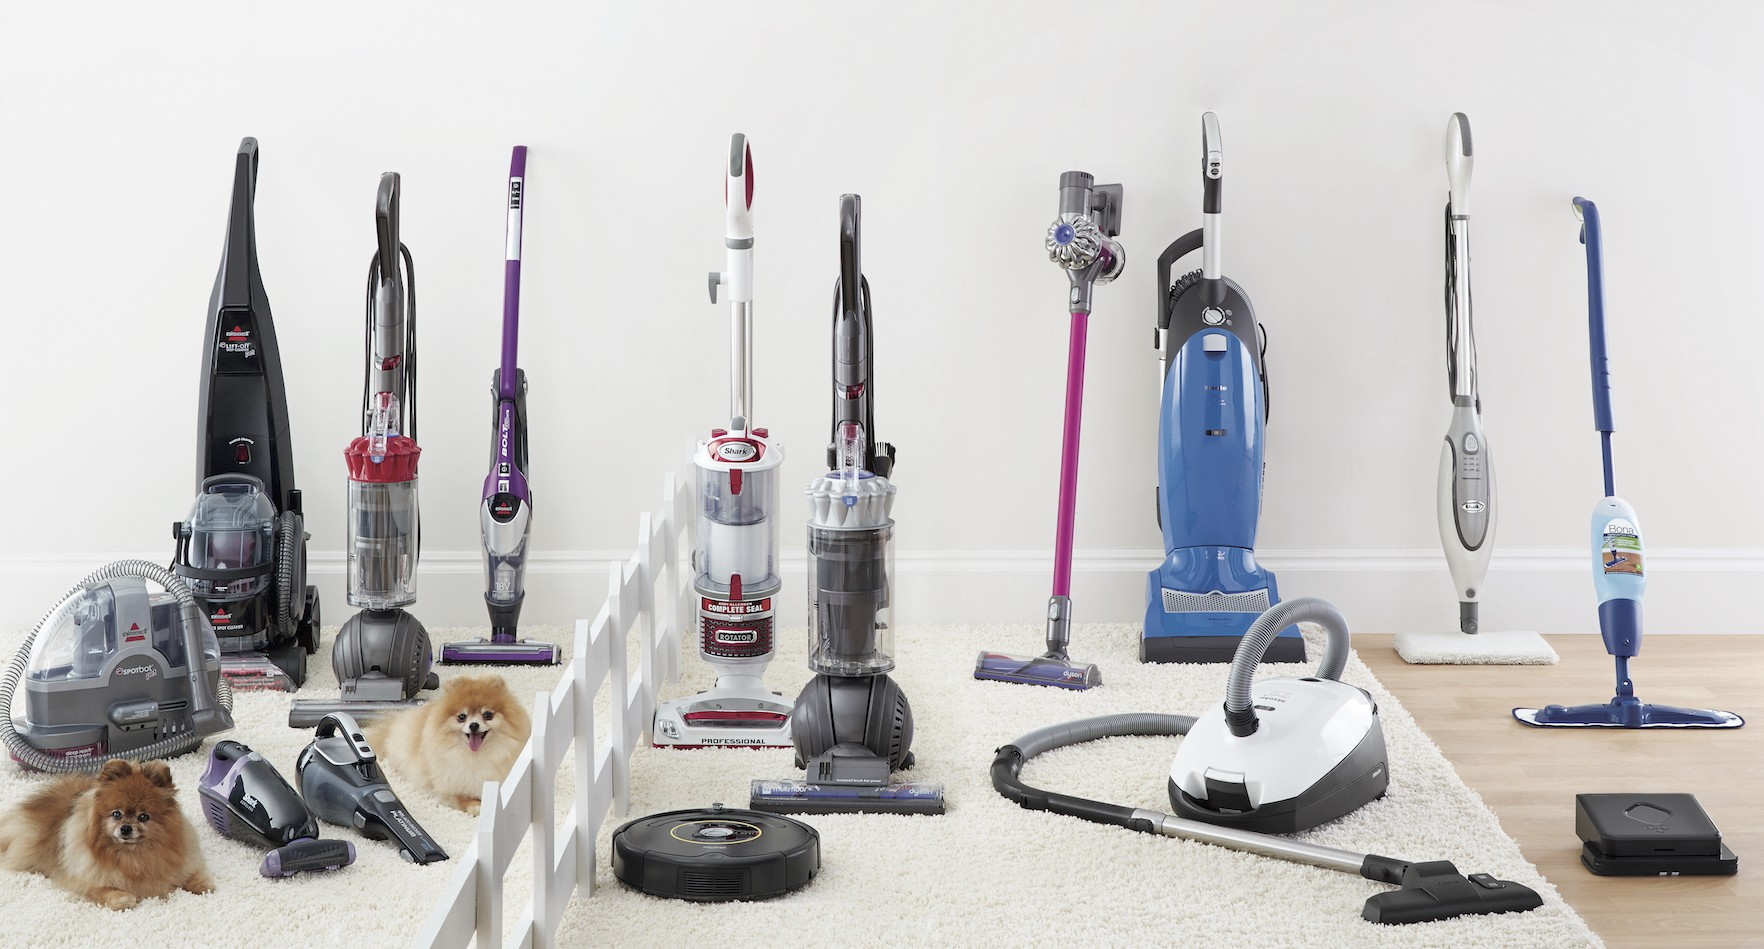 Add a quality Vacuum Cleaner from Bed Bath & Beyond